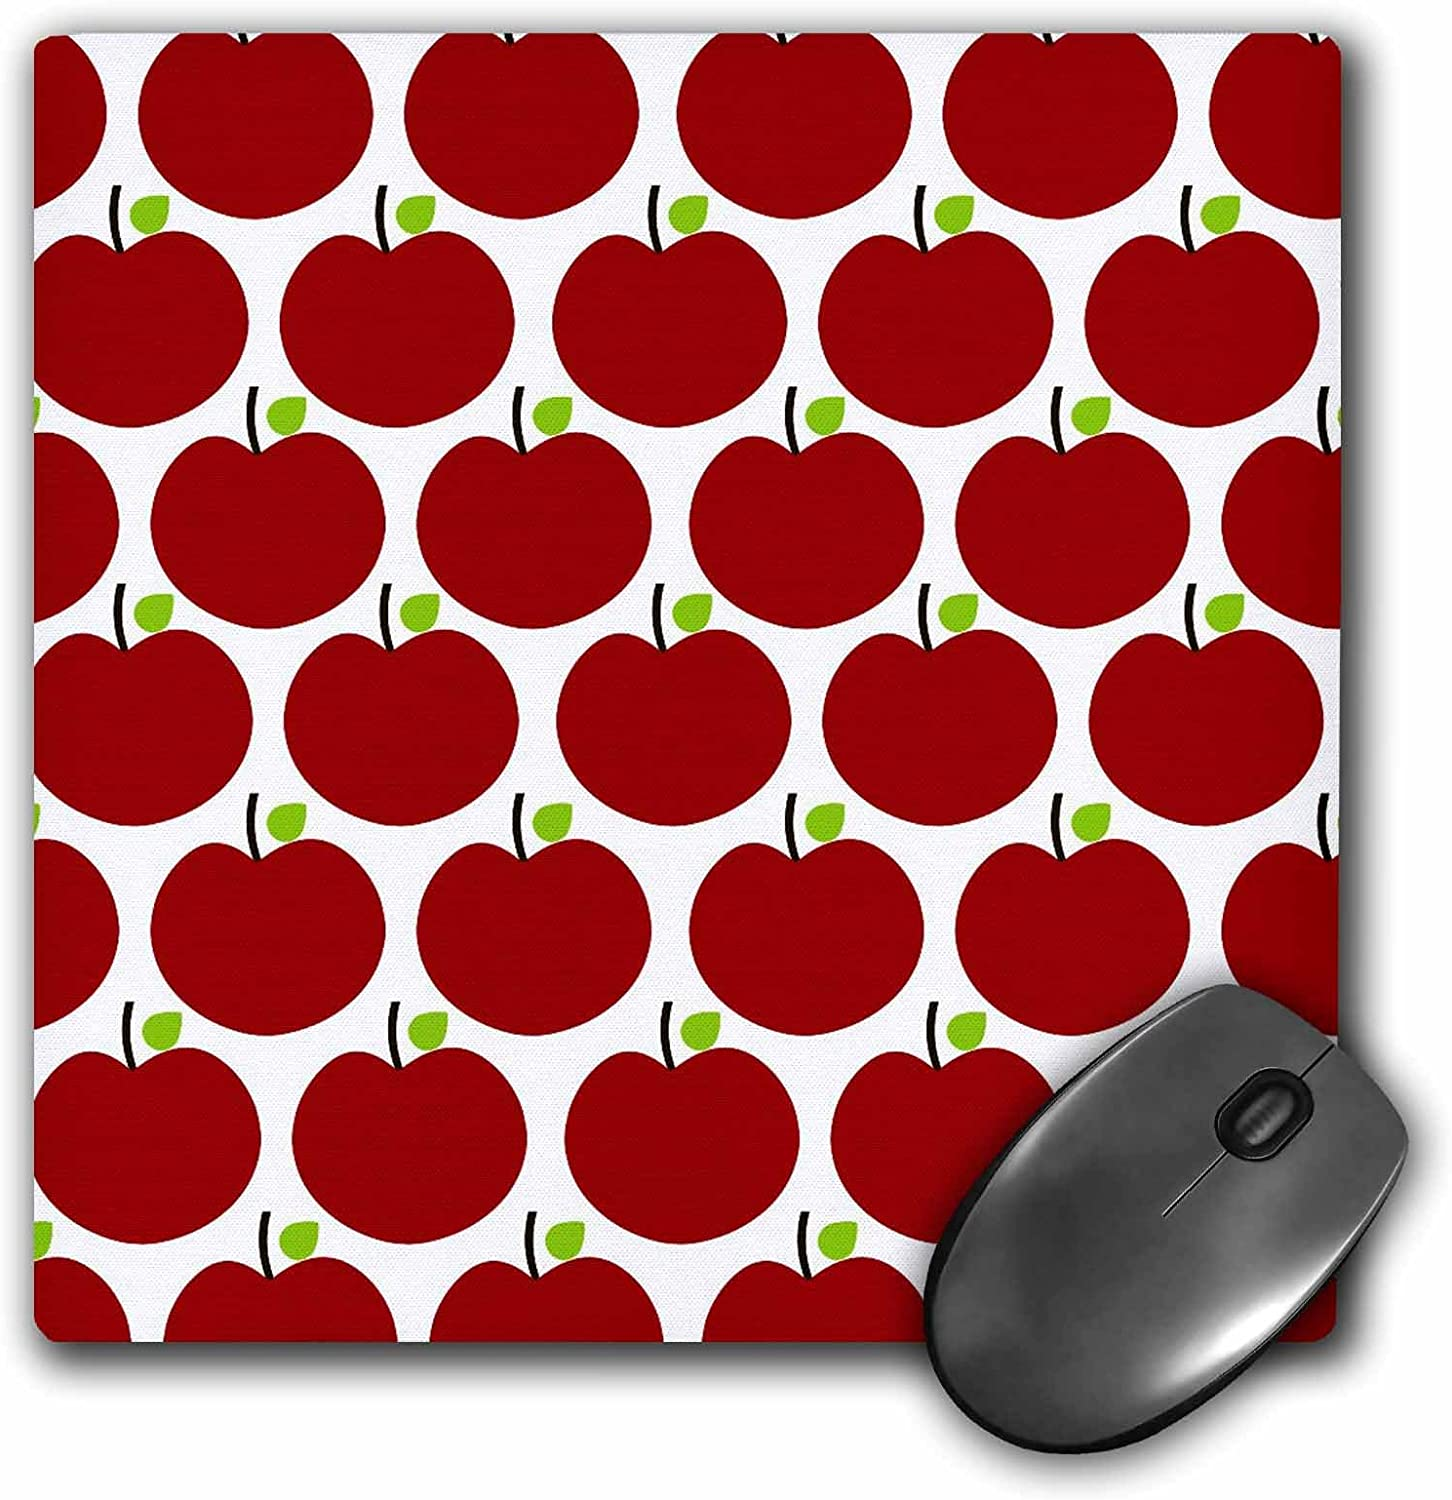 3dRose LLC 8 x 8 x 0.25 Inches Mouse Pad, Red Apples Fruit Kitchen Theme Art (mp_164468_1)